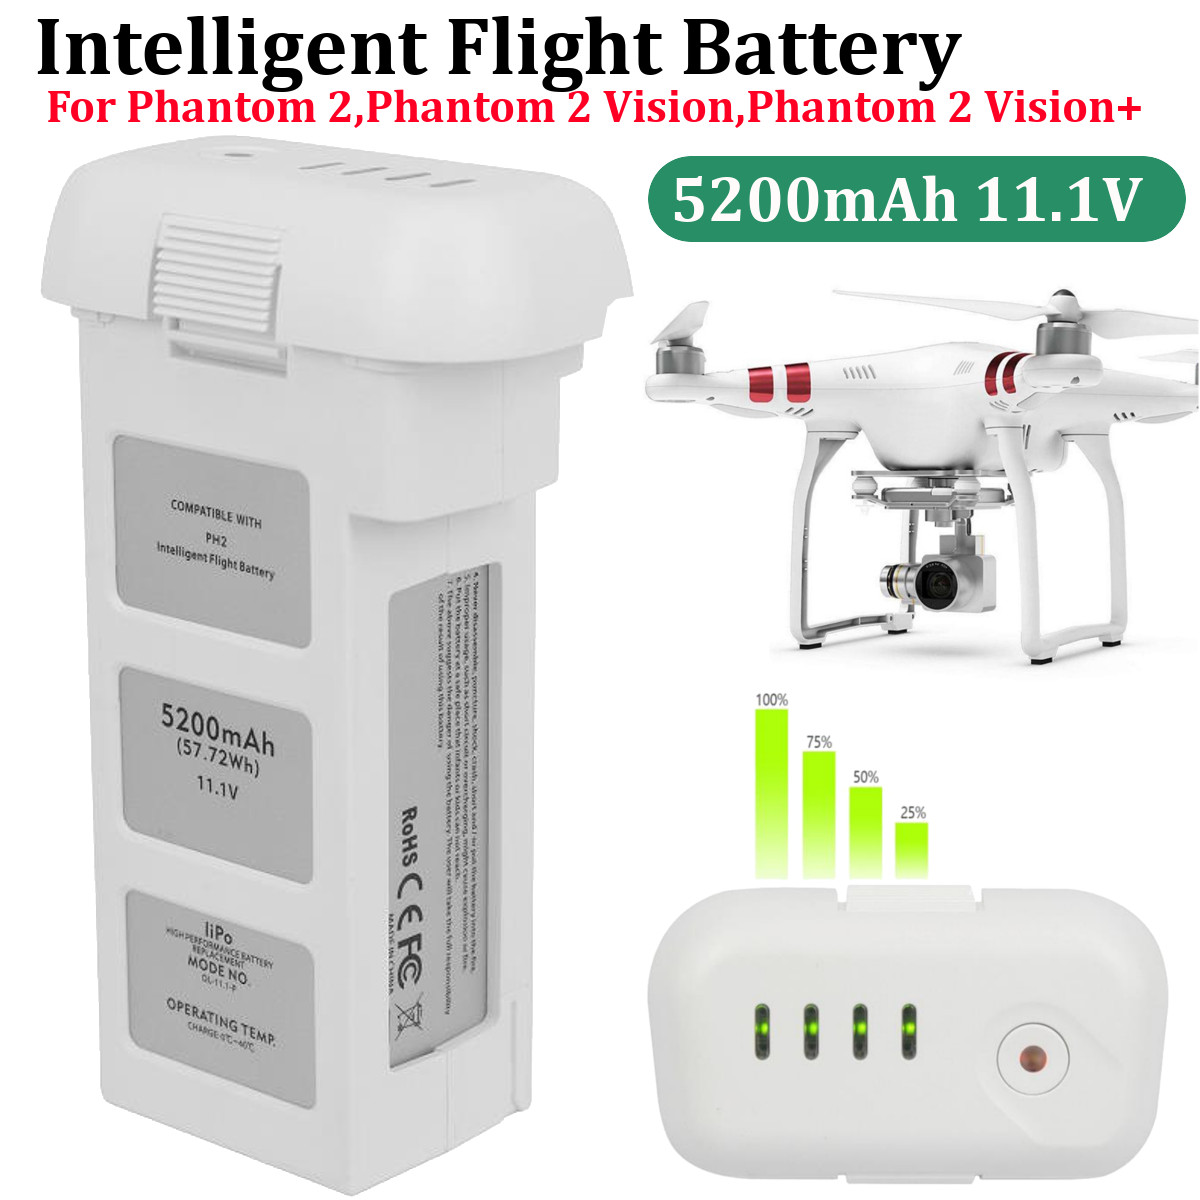 4480 mAh 5200mA véritable batterie de vol intelligente DJI Phantom 2 3 15.2 V, batterie de Drone électronique grand public LiPo 4 S 856678 P